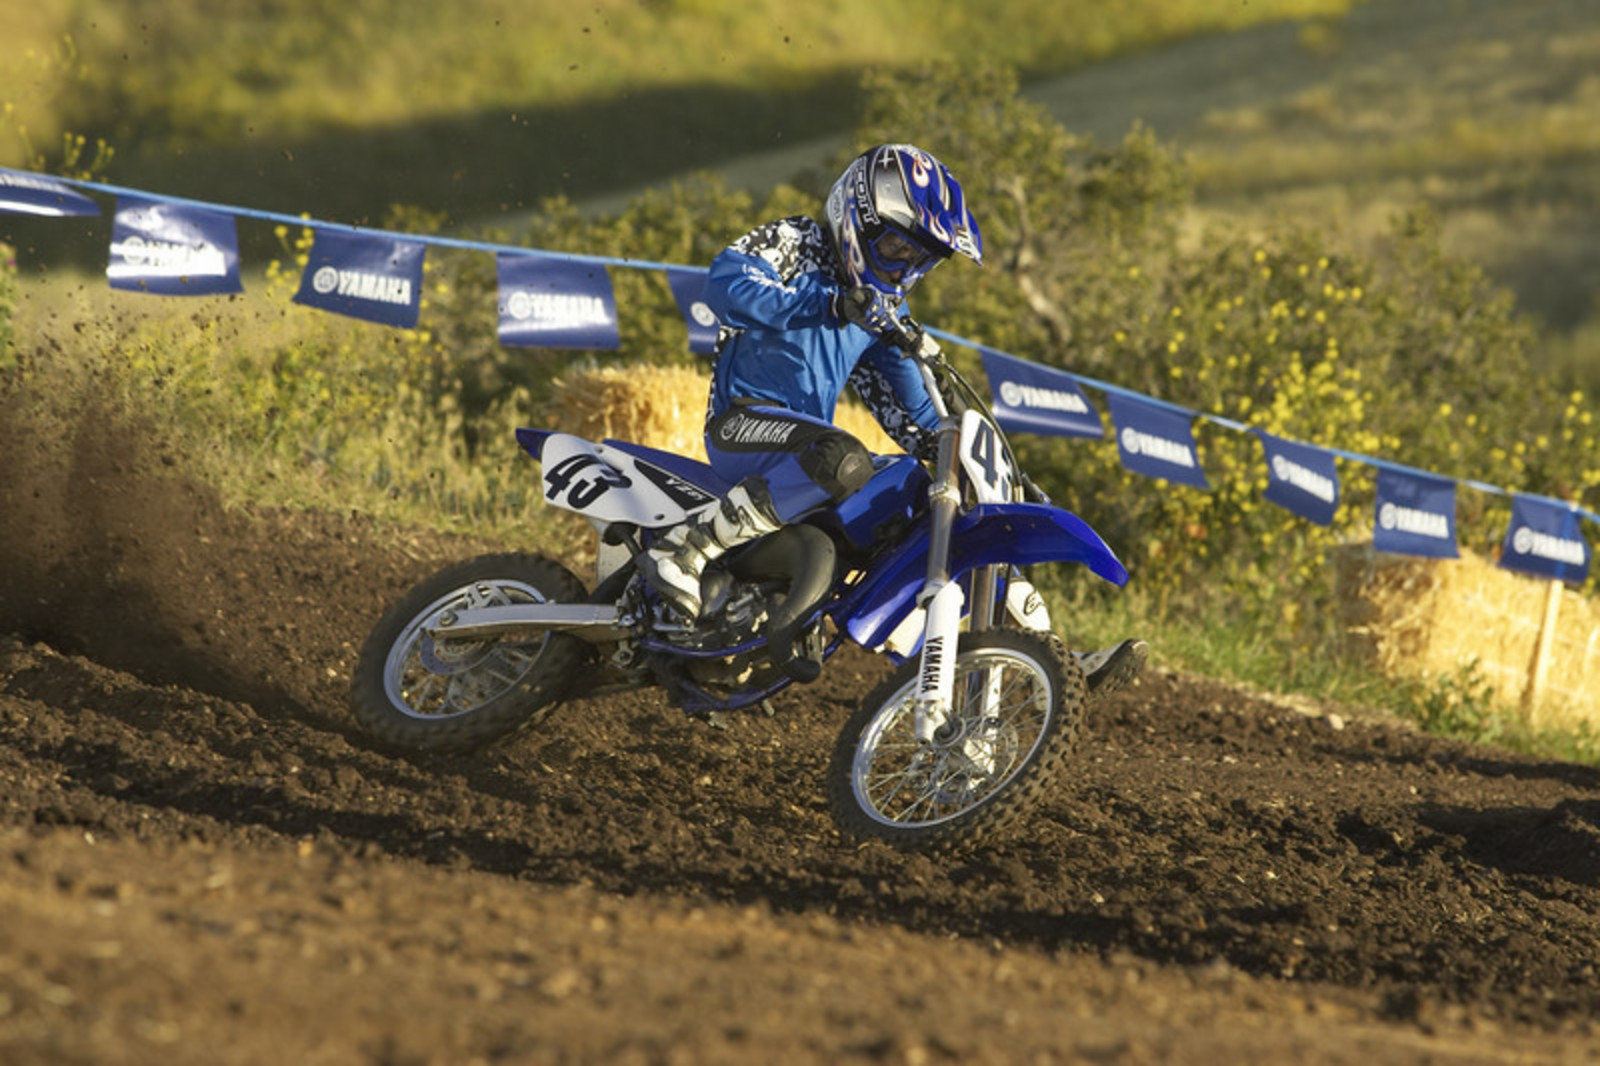 2006 yamaha yz85 picture 51715 motorcycle review top for Yamaha yz85 top speed